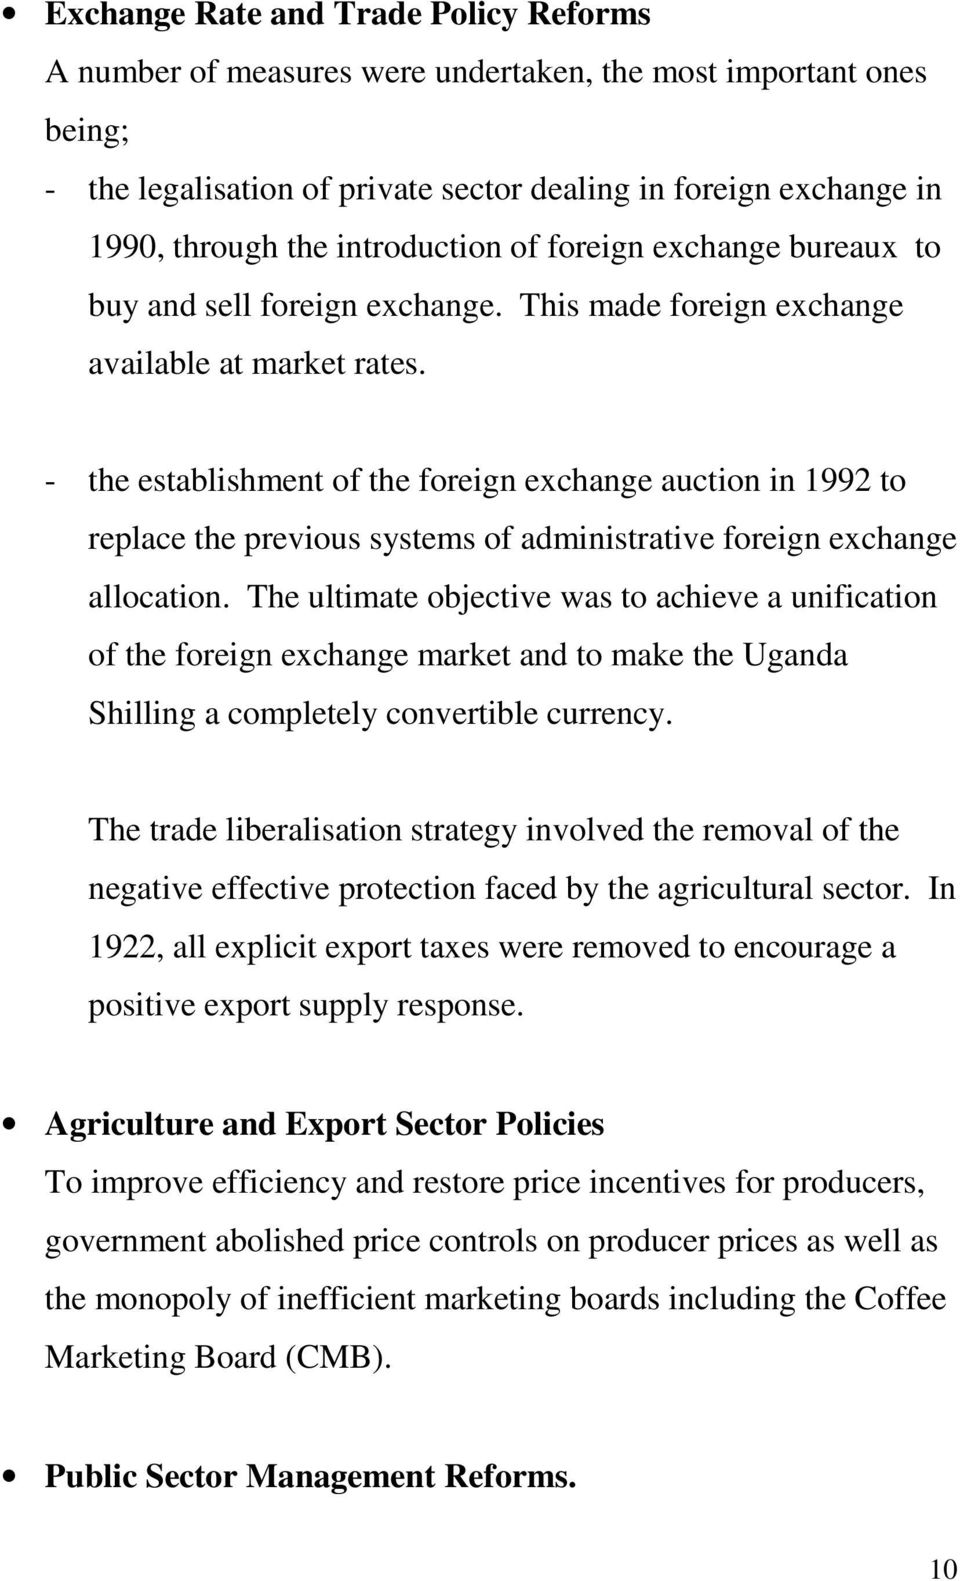 - the establishment of the foreign exchange auction in 1992 to replace the previous systems of administrative foreign exchange allocation.